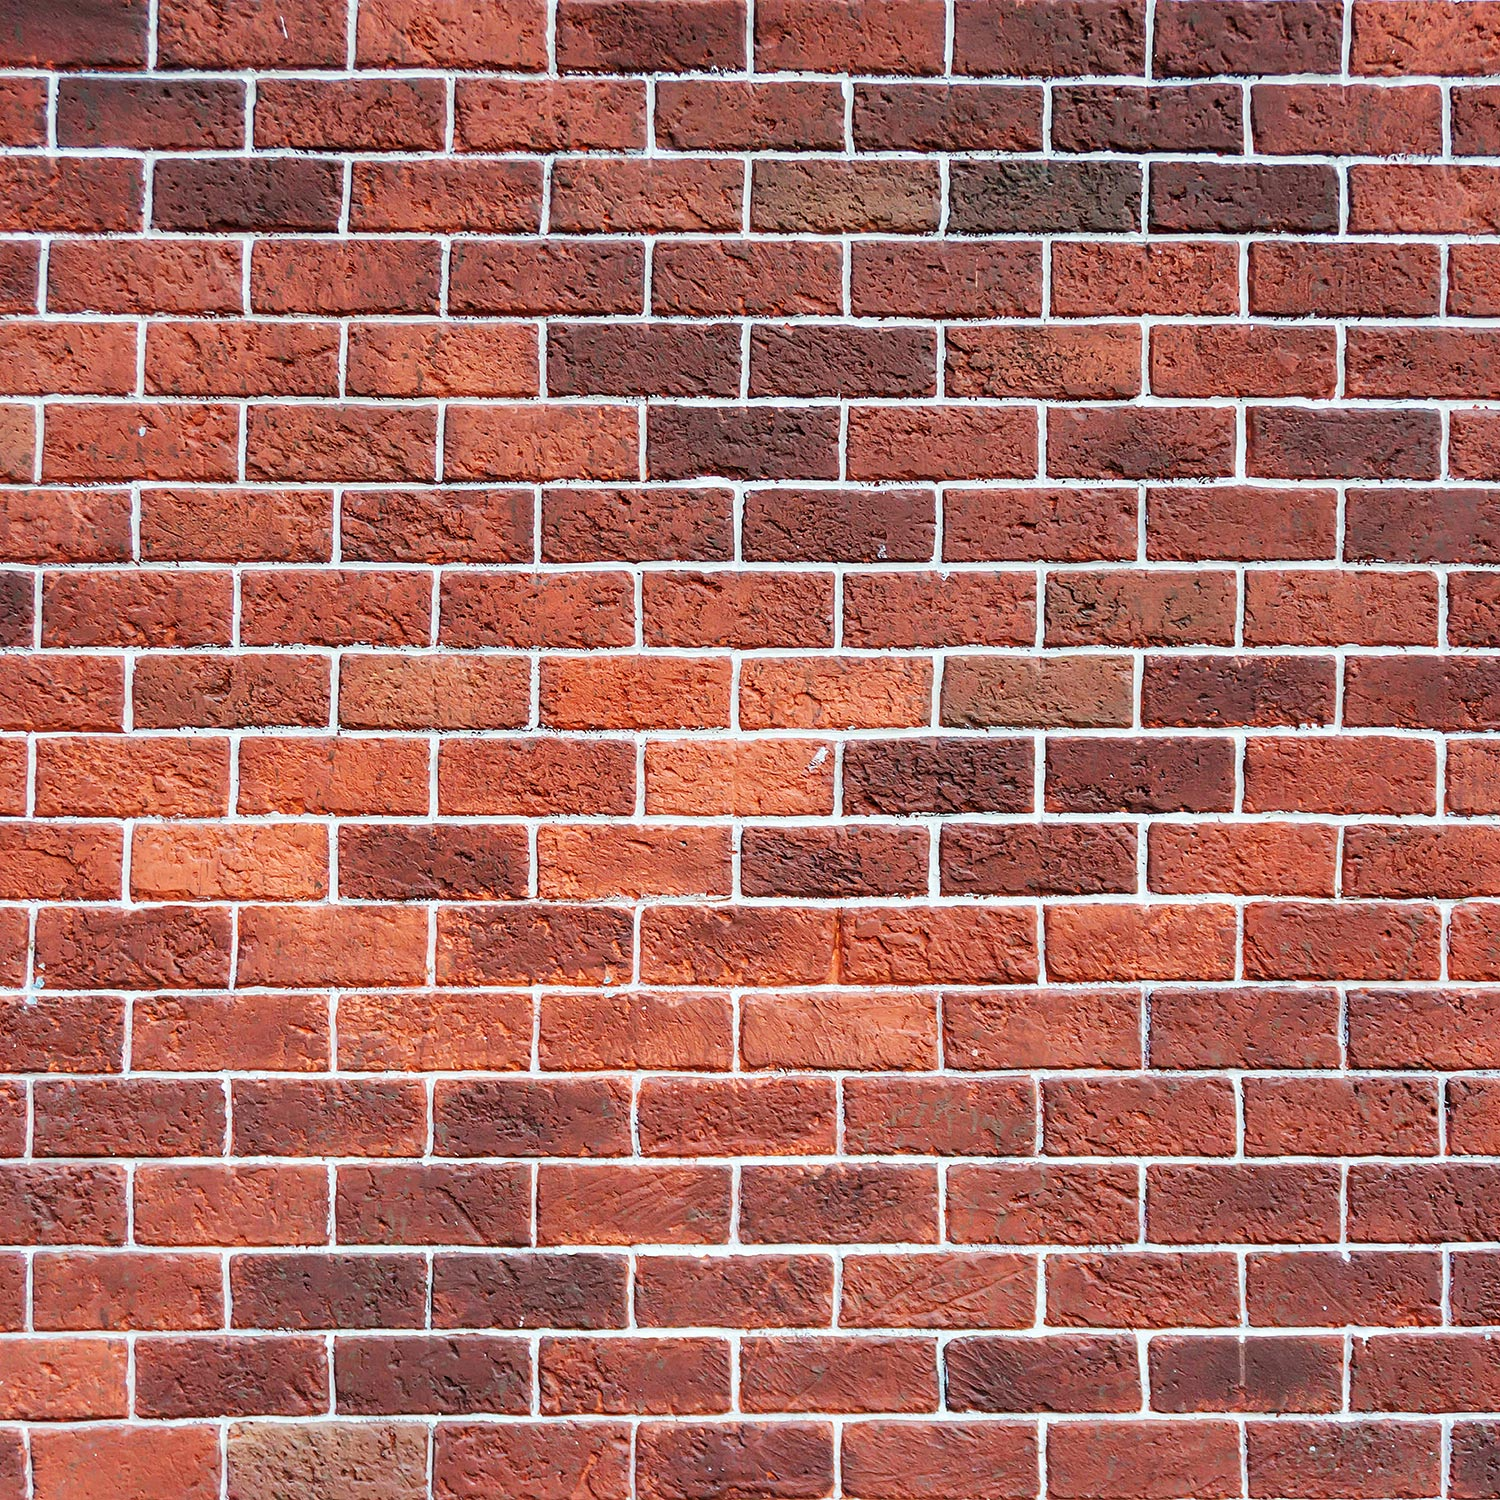 Top Free Brick Wall Backgrounds